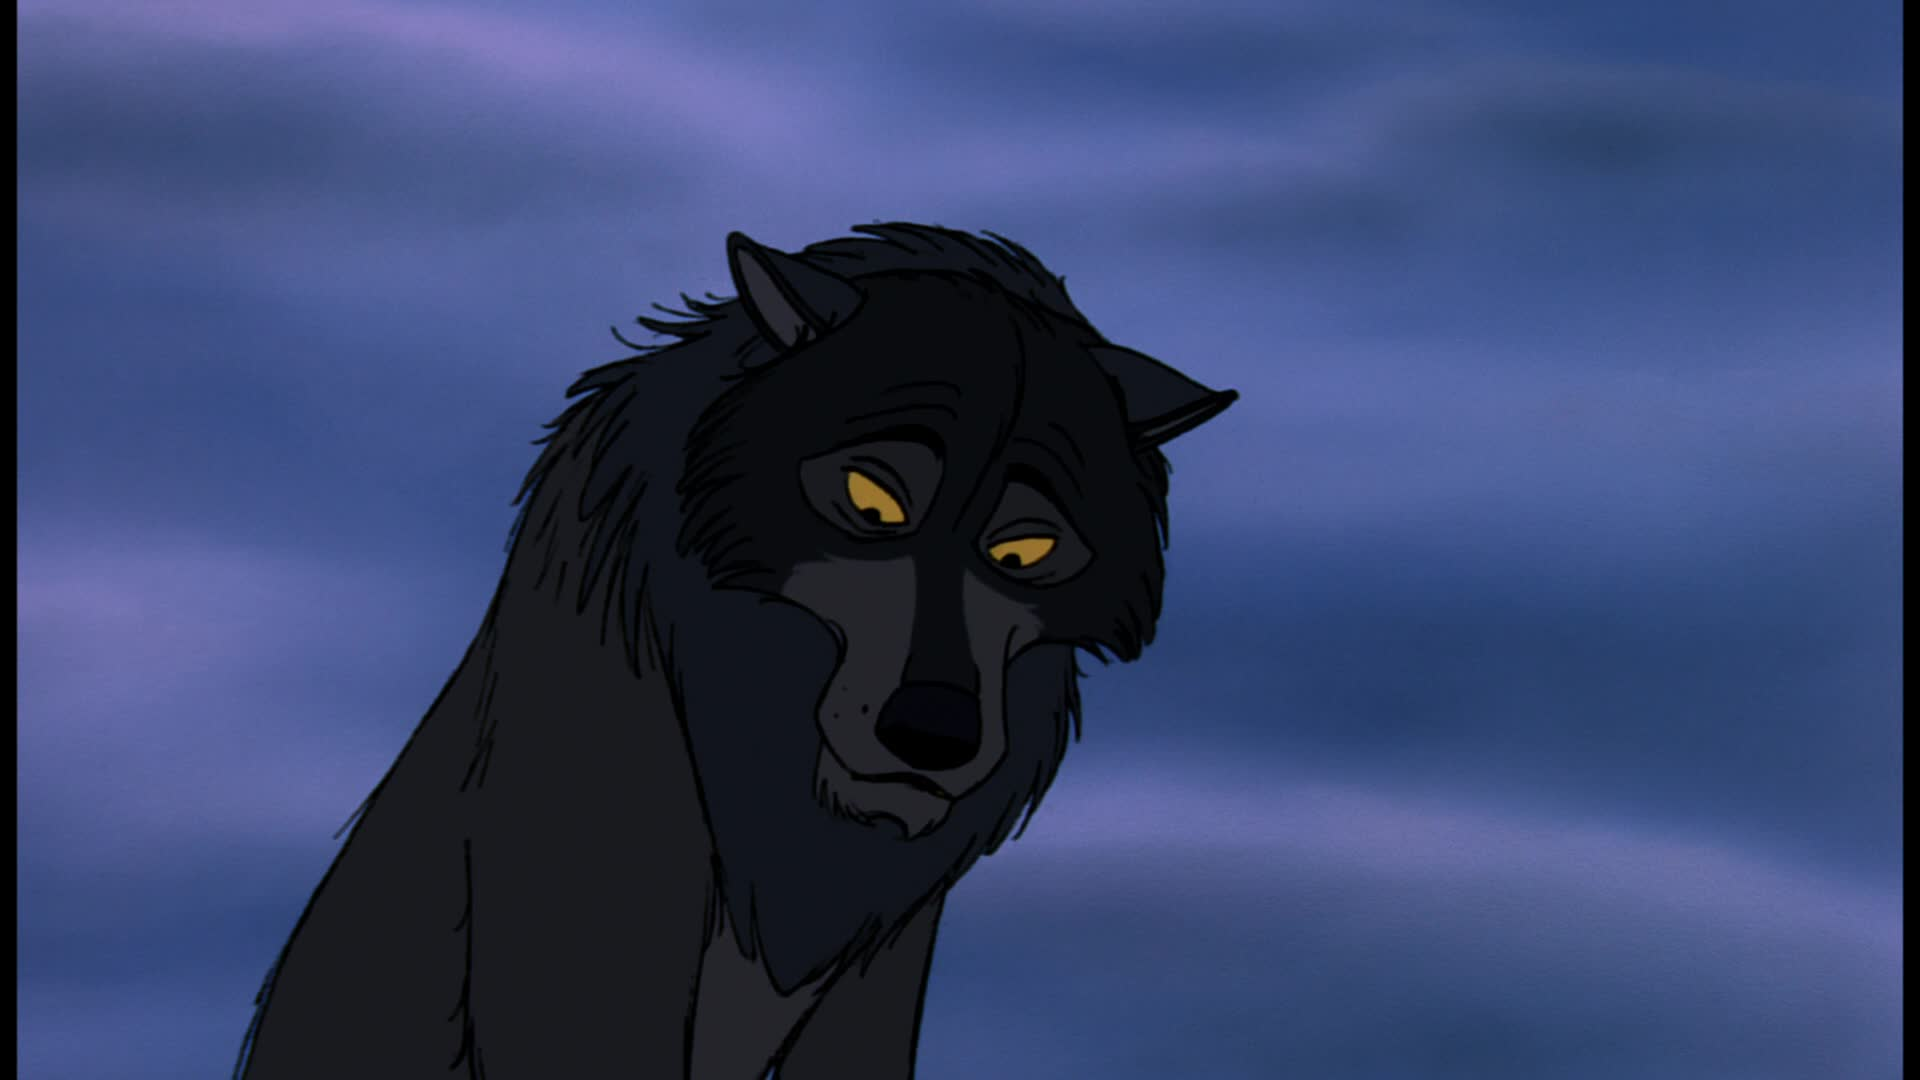 20 Beautiful African Words in The Lion King Thatll Make